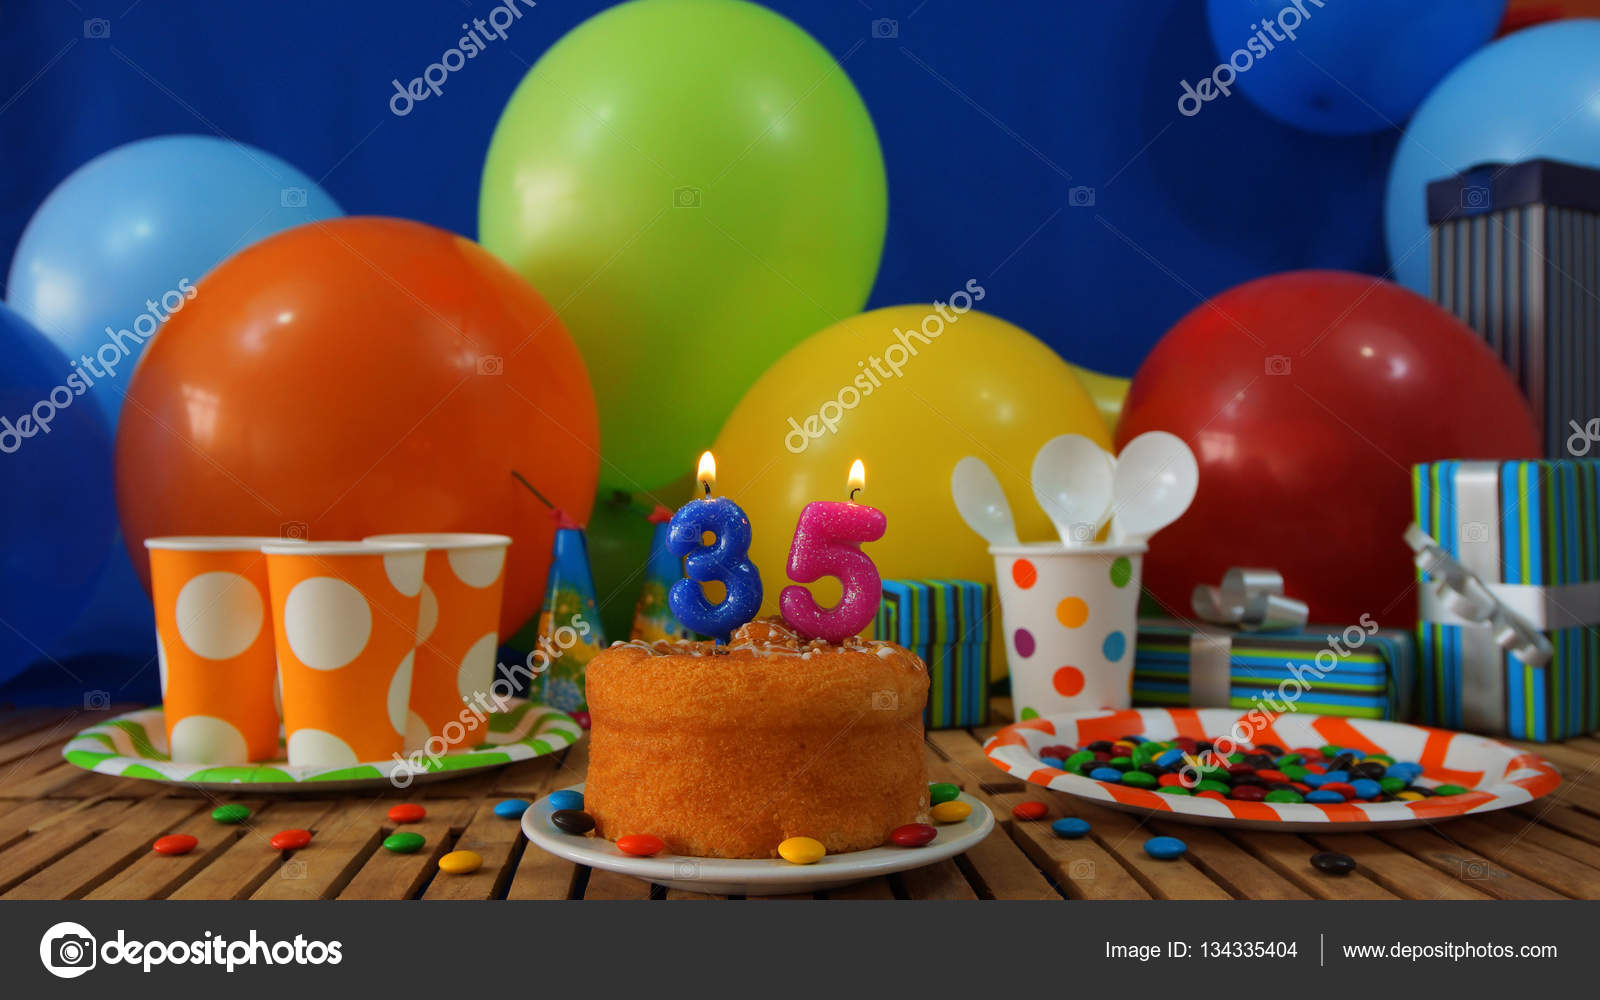 birthday cake on rustic wooden table with background of colorful